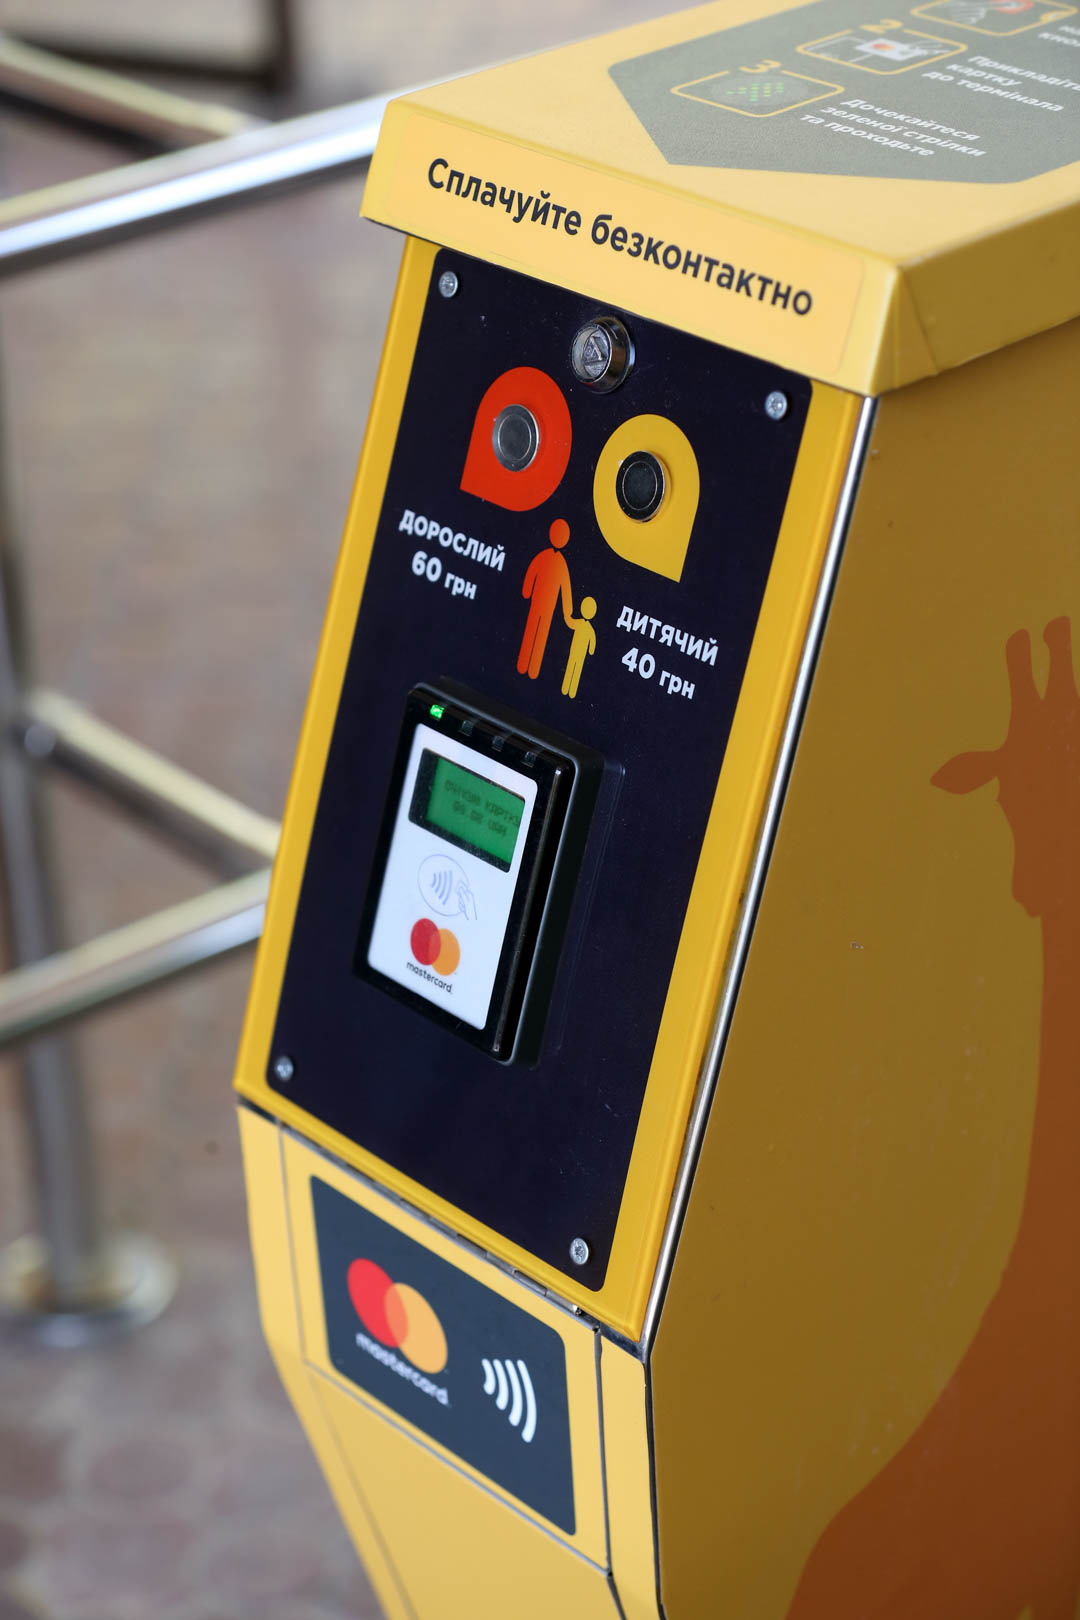 Zoo_Contactless_1